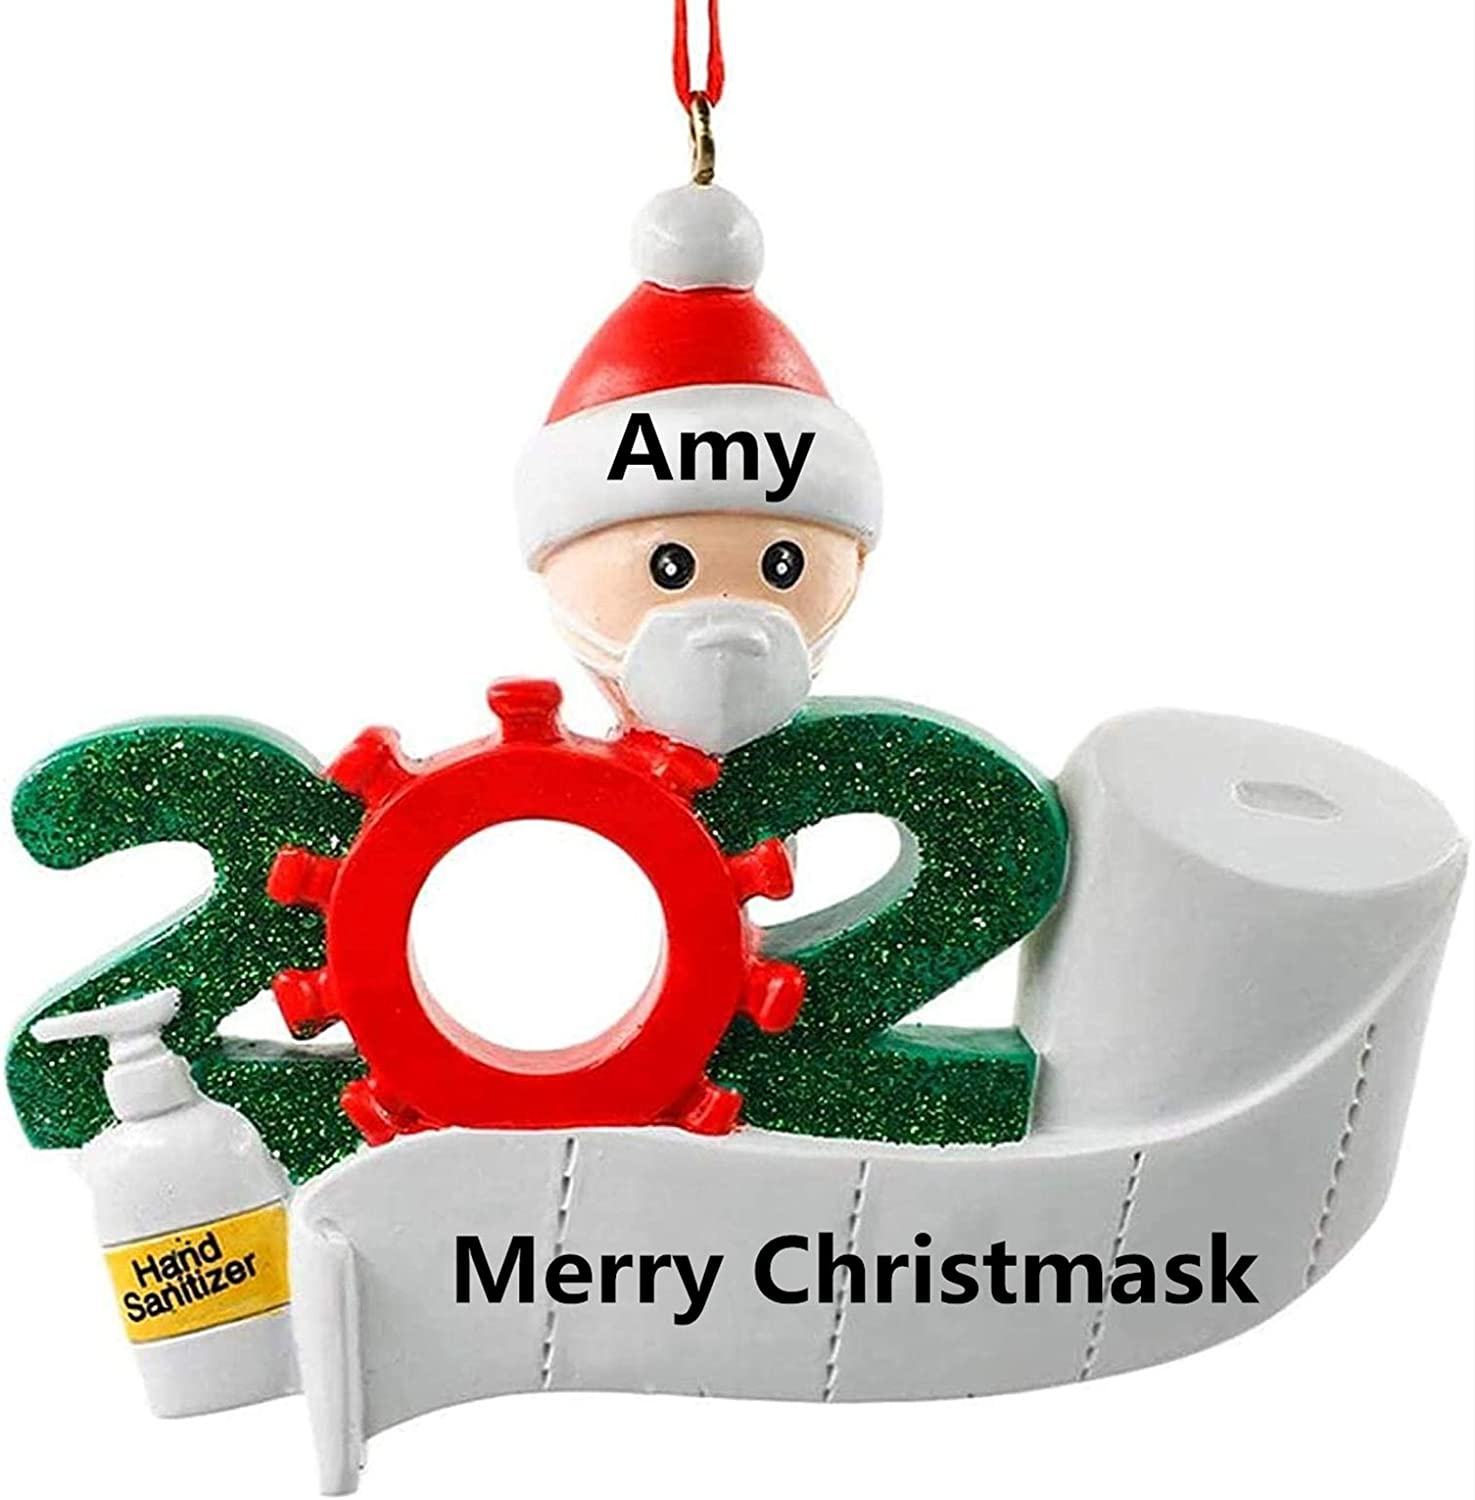 2020 Quarantine Survivor Family Customized Christmas Decorating Kit DIY Creative Gift for Family N A 2020 Personalized Name Christmas Ornament kit Family of 1